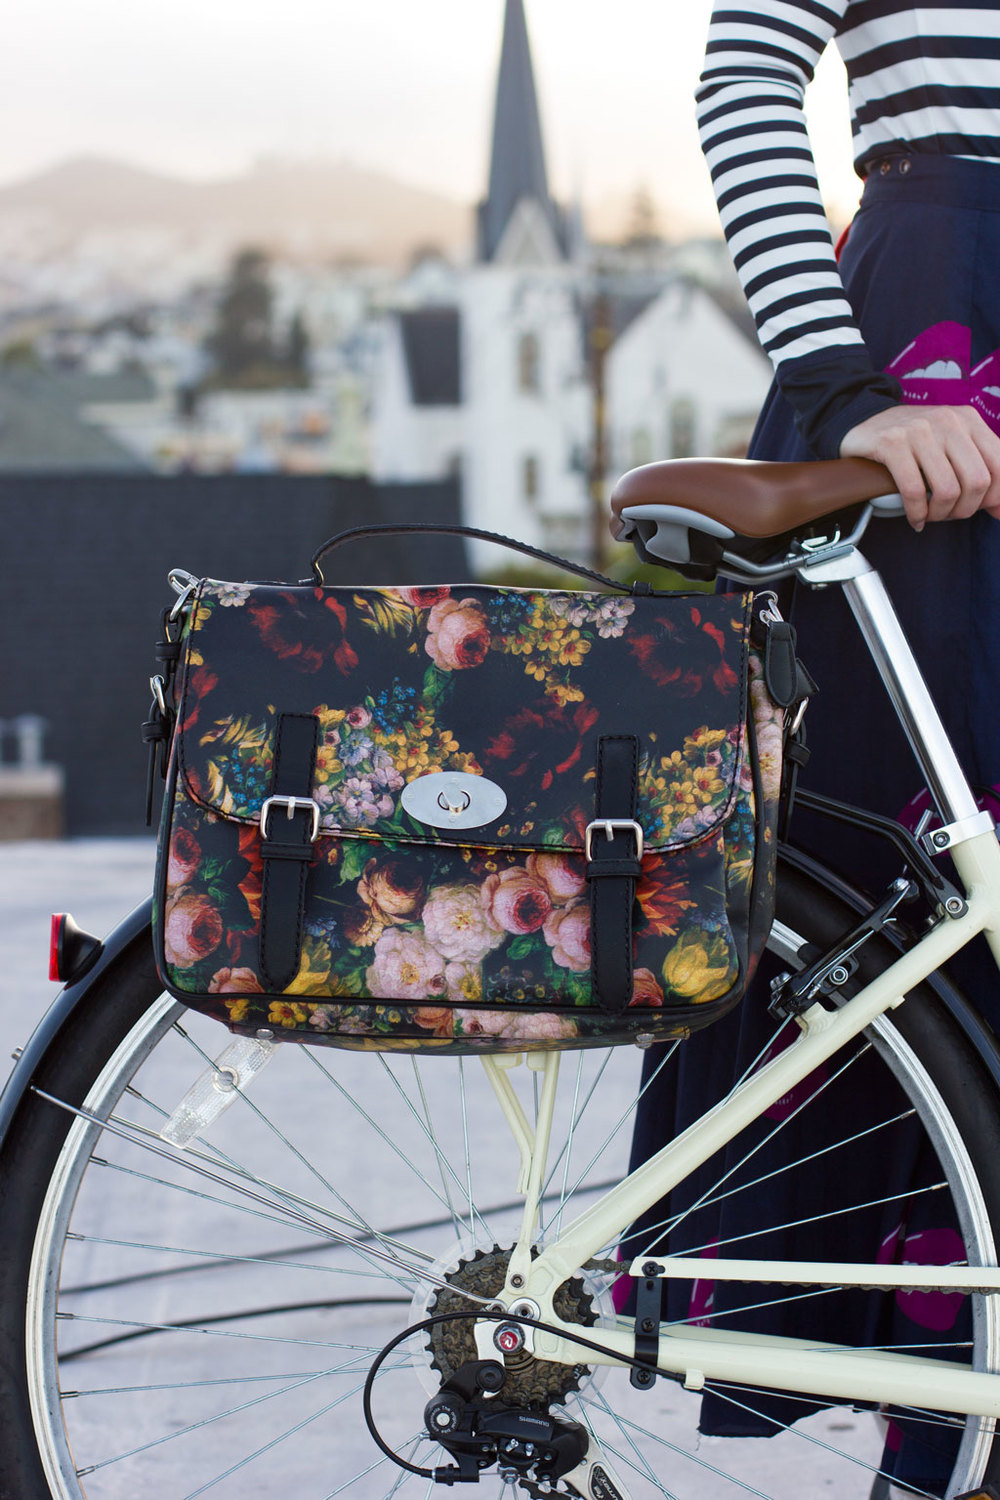 Special-Flower-Bike-Bag-On-Bike-1.jpg